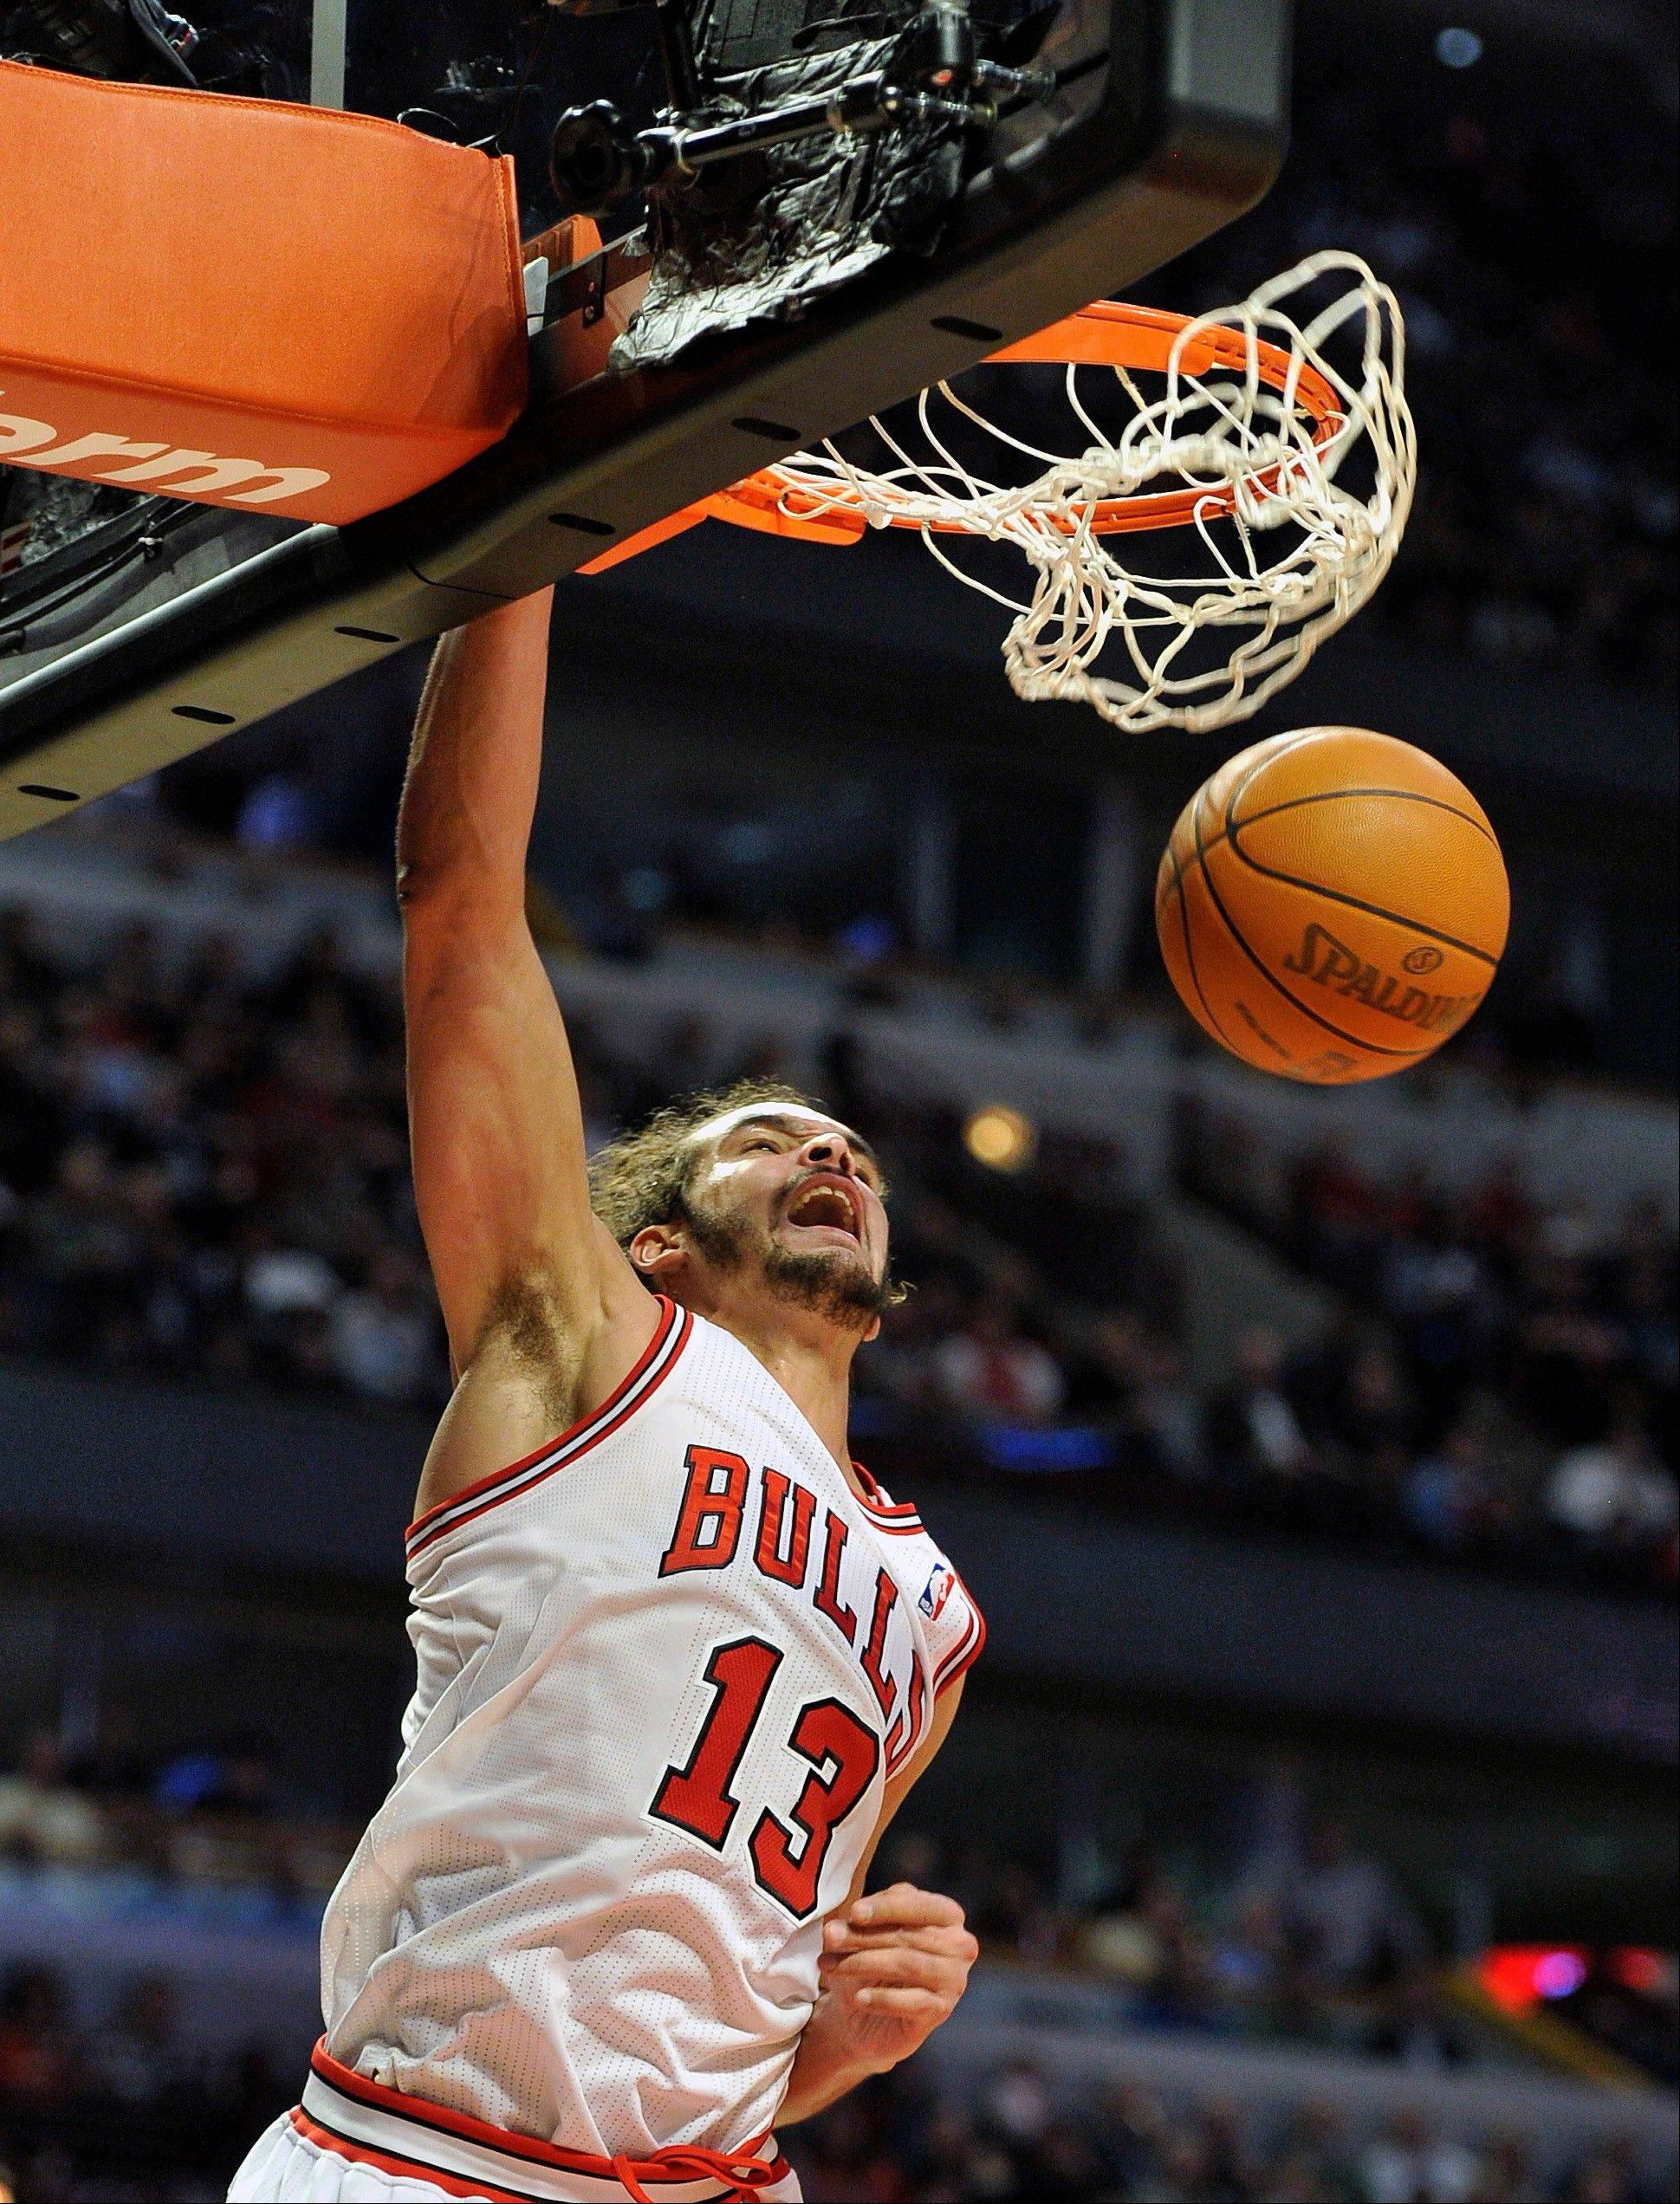 Bulls center Joakim Noah dunks against the Milwaukee Bucks Wednesday during the second half. The Bulls defeated the Bucks 110-91.